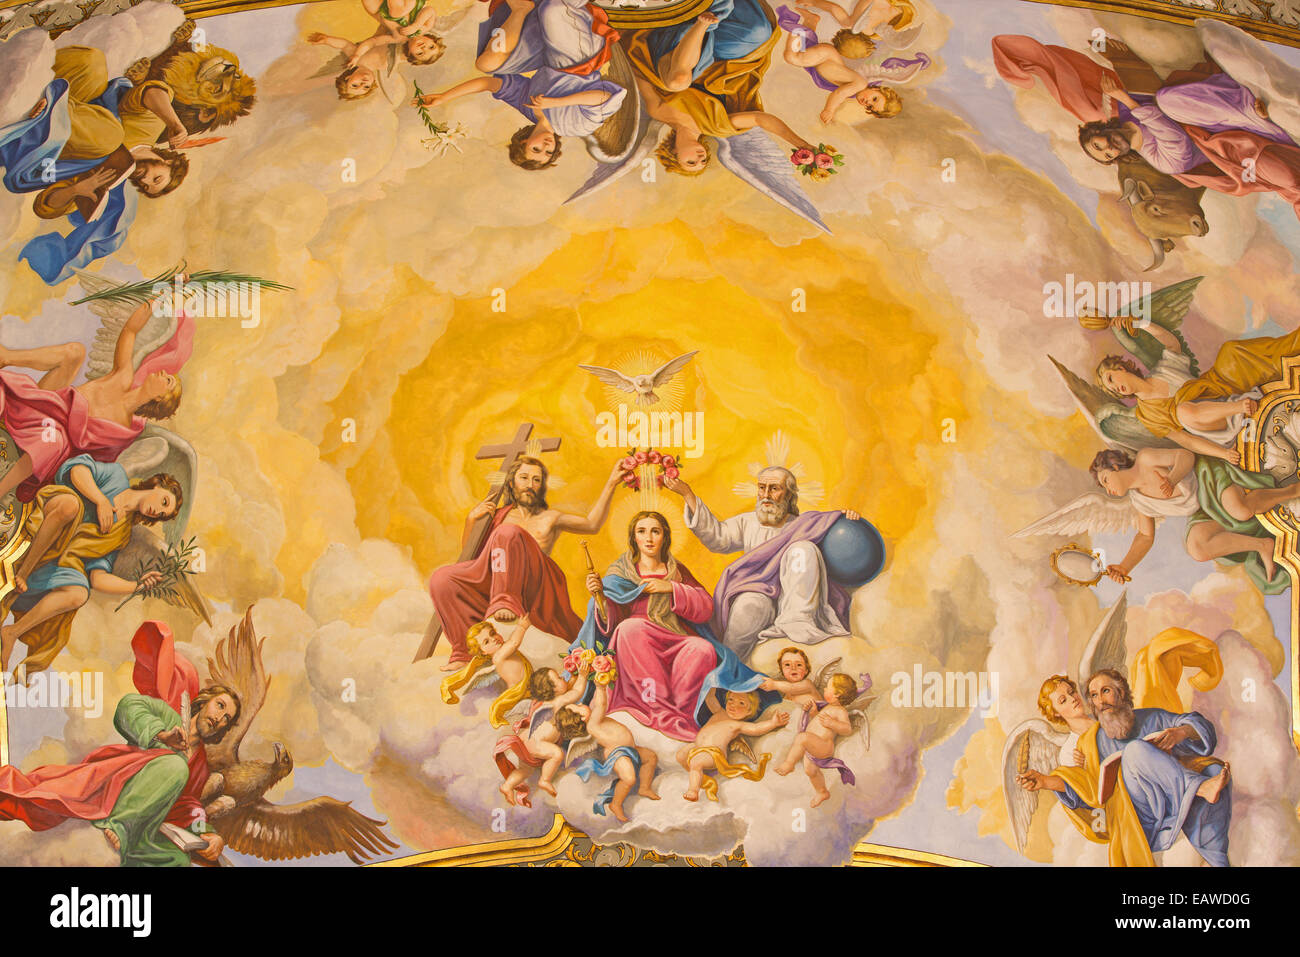 Seville - The fresco of Coronation of Virgin Mary on the ceiling of presbytery of church Basilica de la Macarena - Stock Image